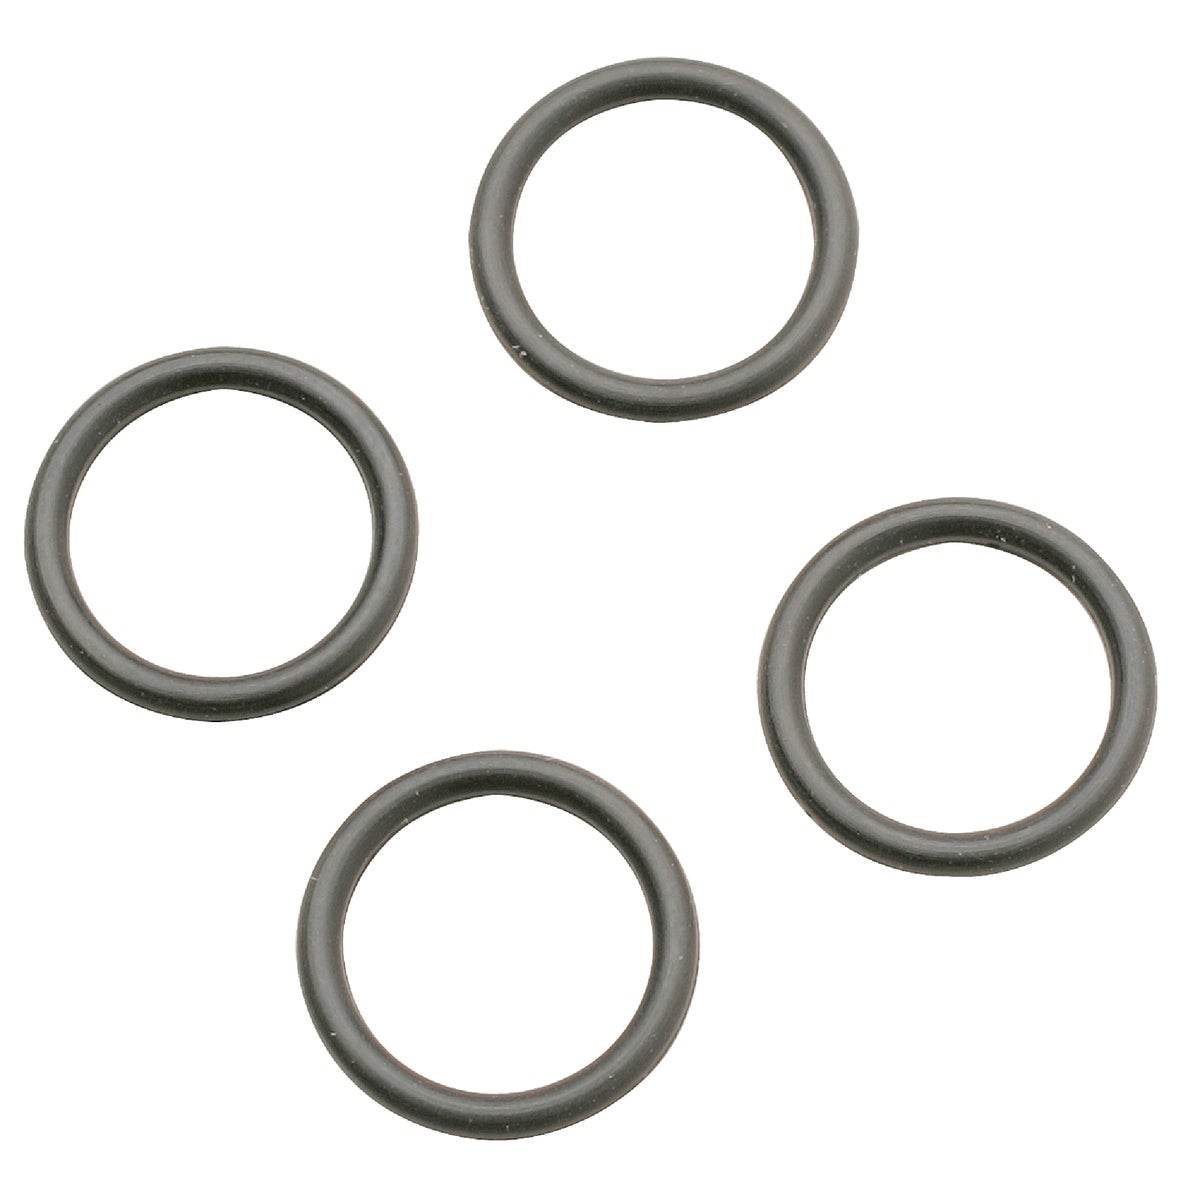 "5/8""ID O-RINGS - 403334 by Plumb Pak/keeney Mfg"